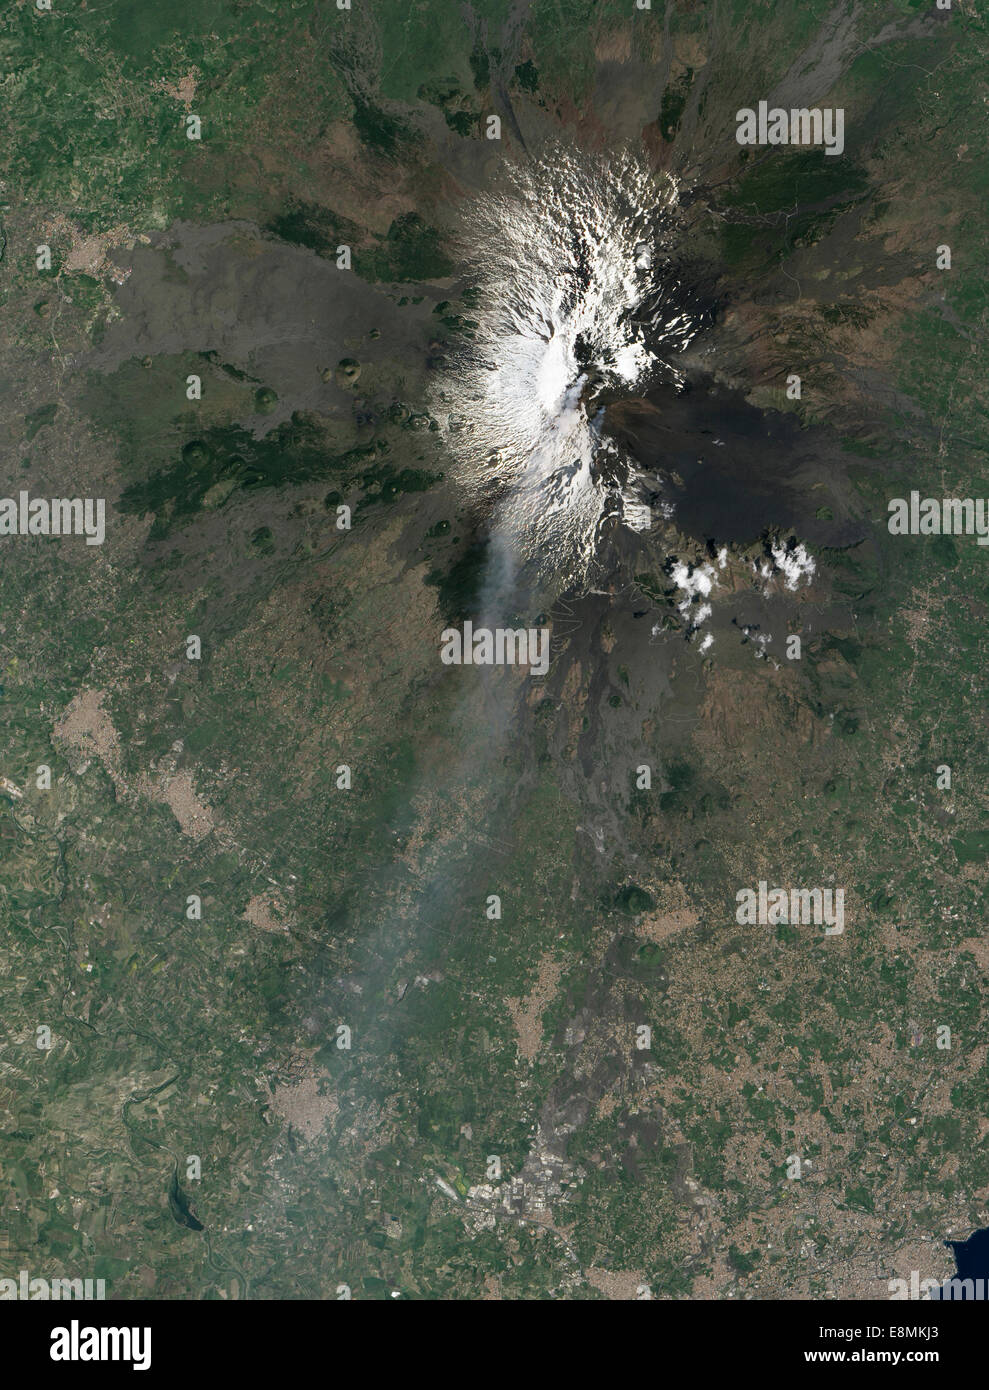 April 18, 2013 - Craters near the summit of Mount Etna streamed ash and volcanic gases shortly before the volcano's - Stock Image